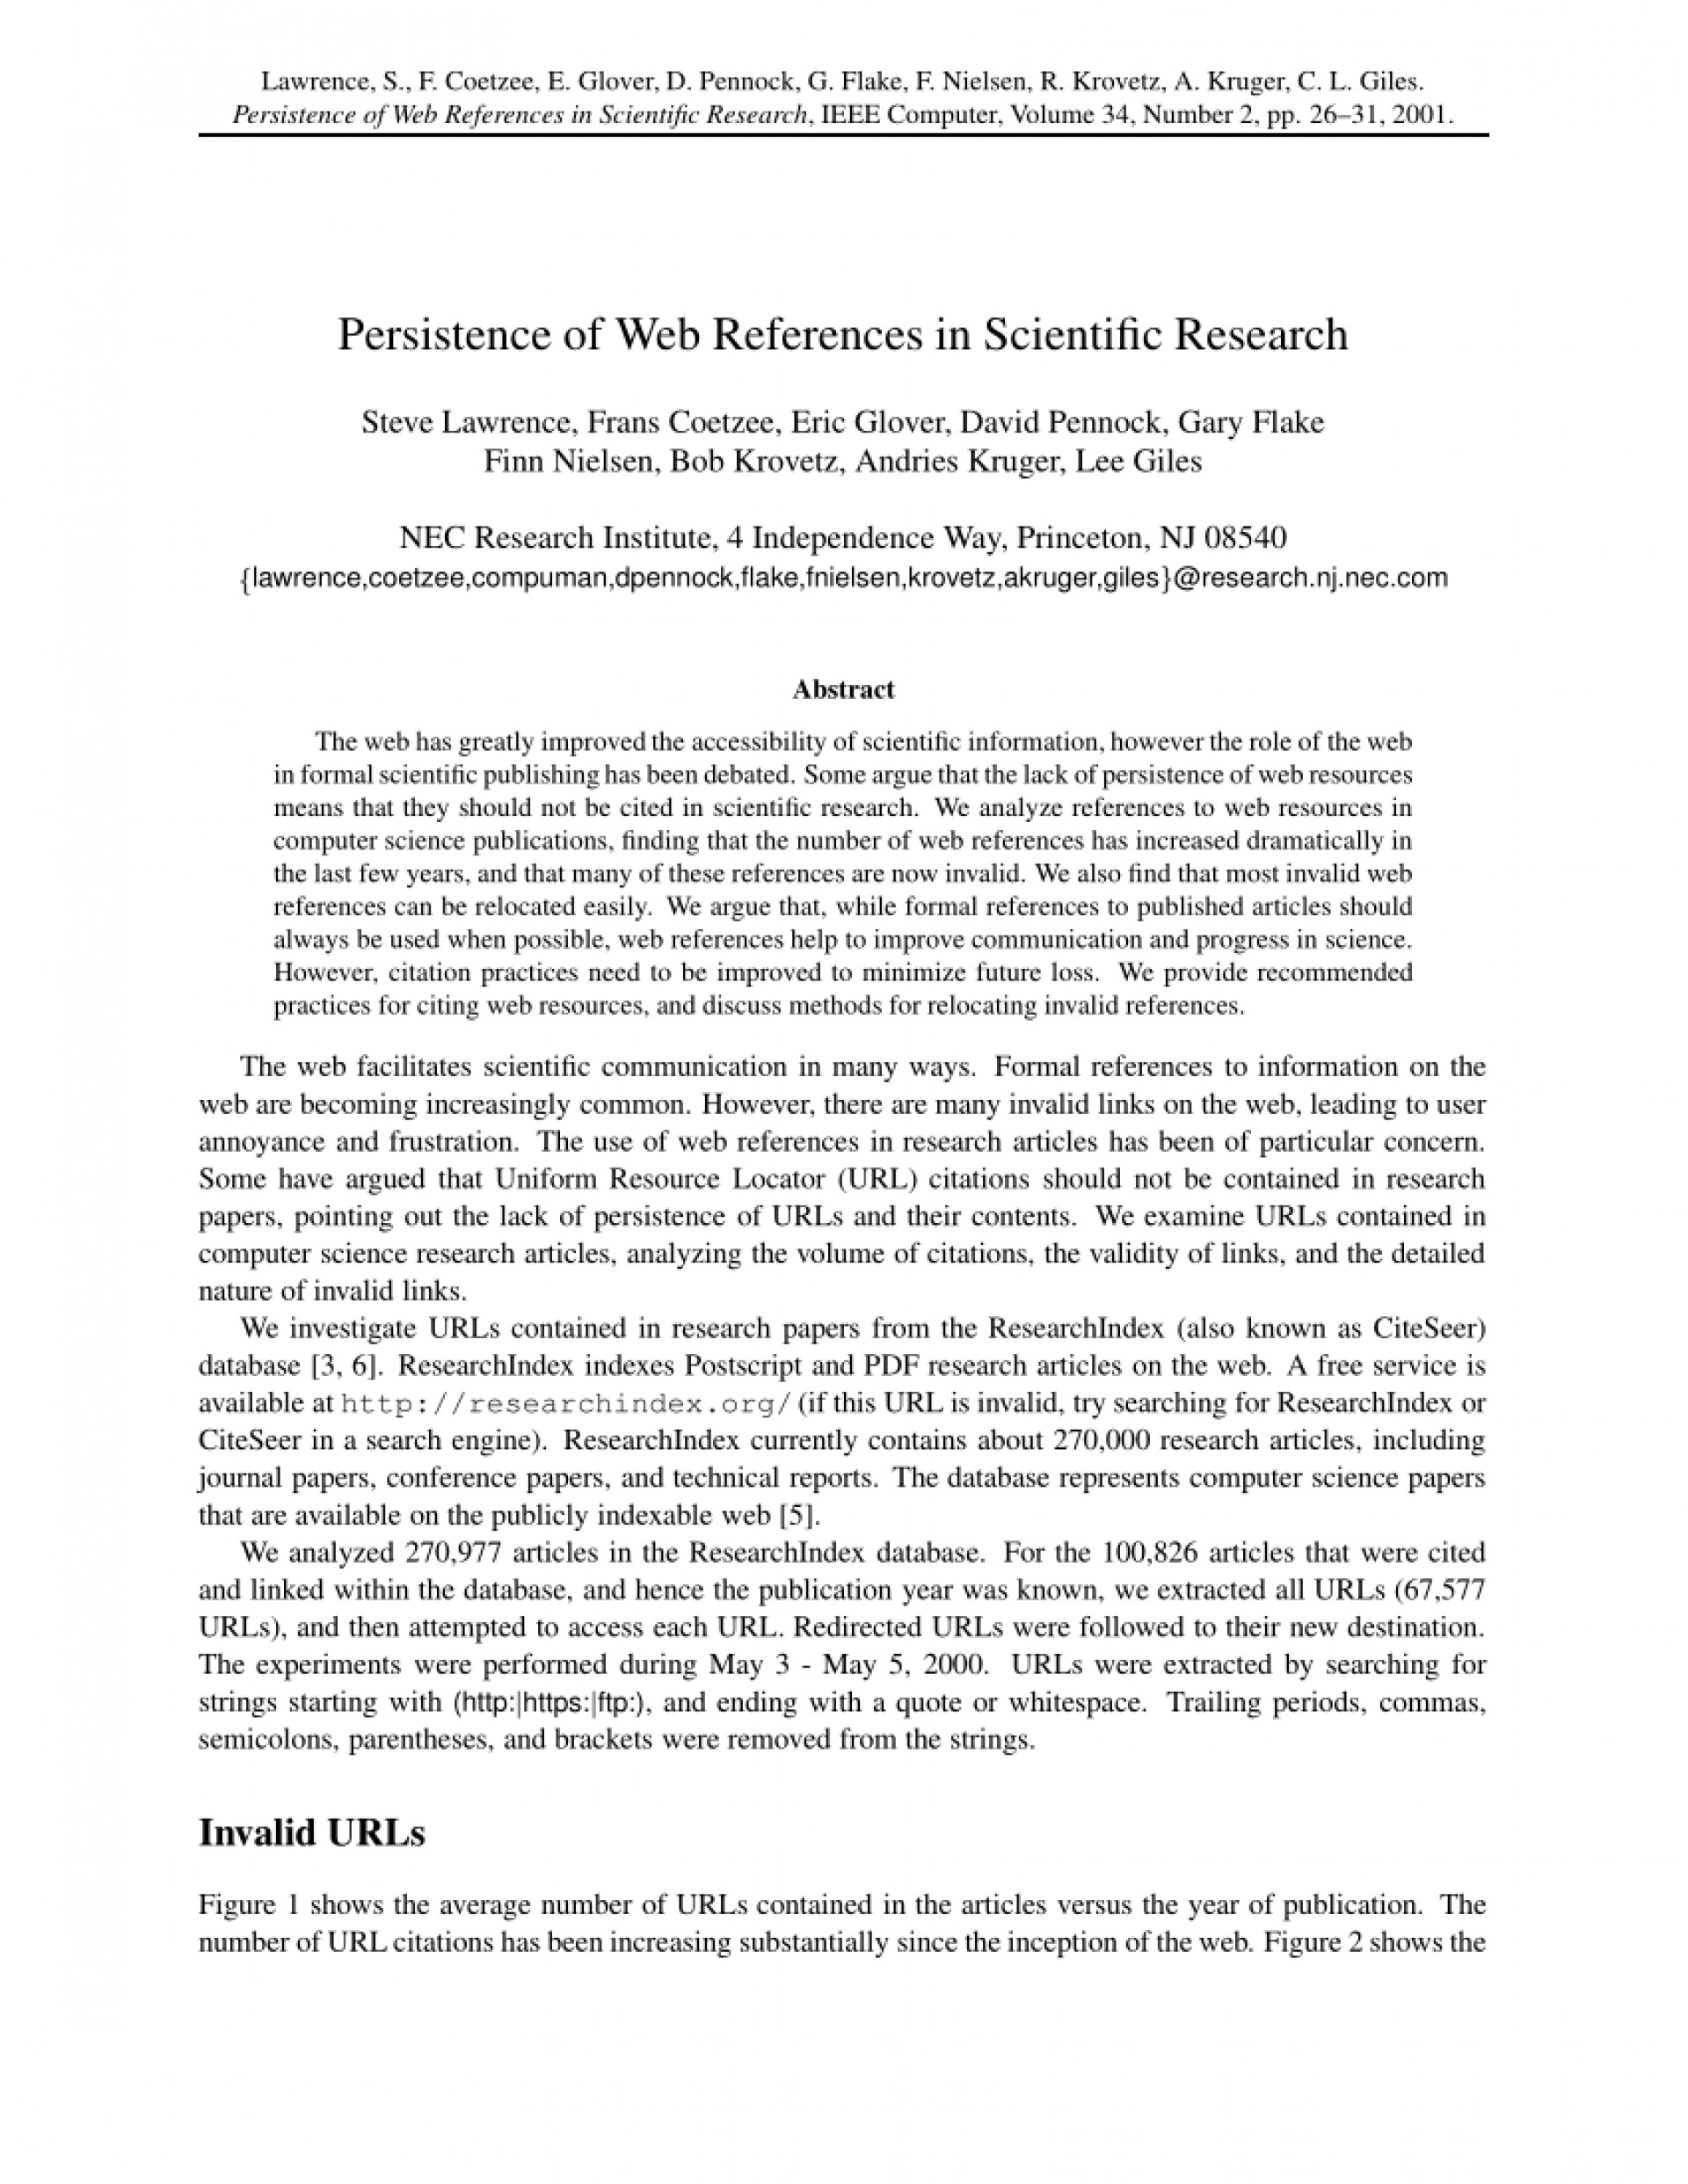 003 Research Paper Citing References In Scientific Papers Singular 1920